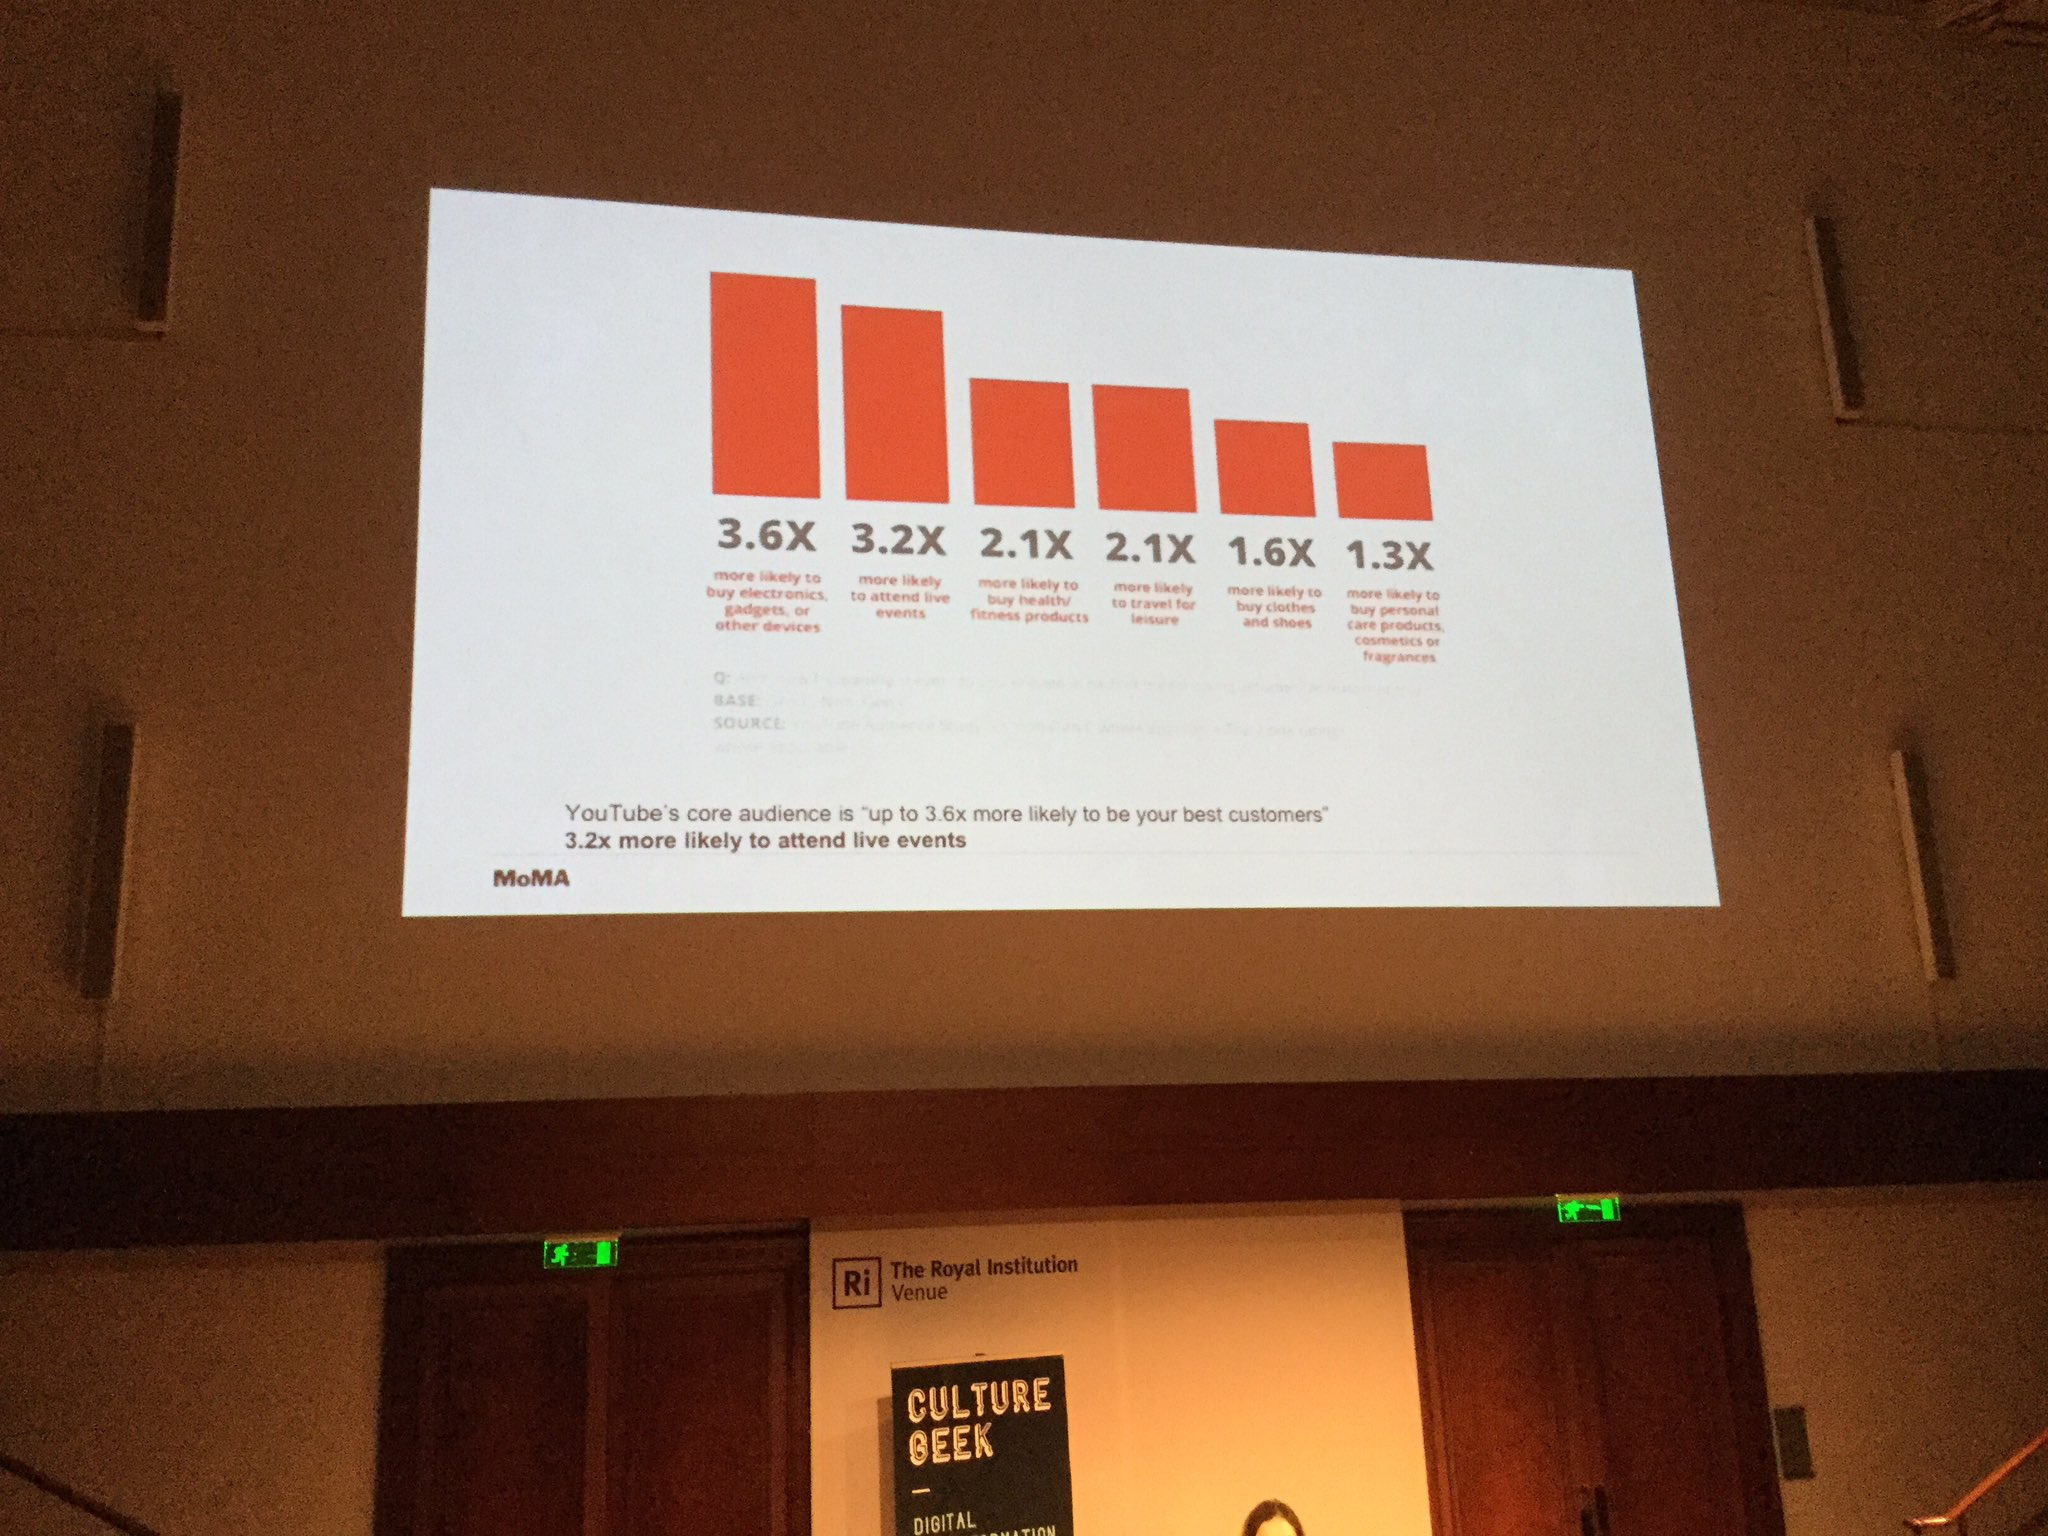 Live streaming of events has proved extremely popular - believe a crossover with actual visits #culturegeek https://t.co/1WeHHSxubg